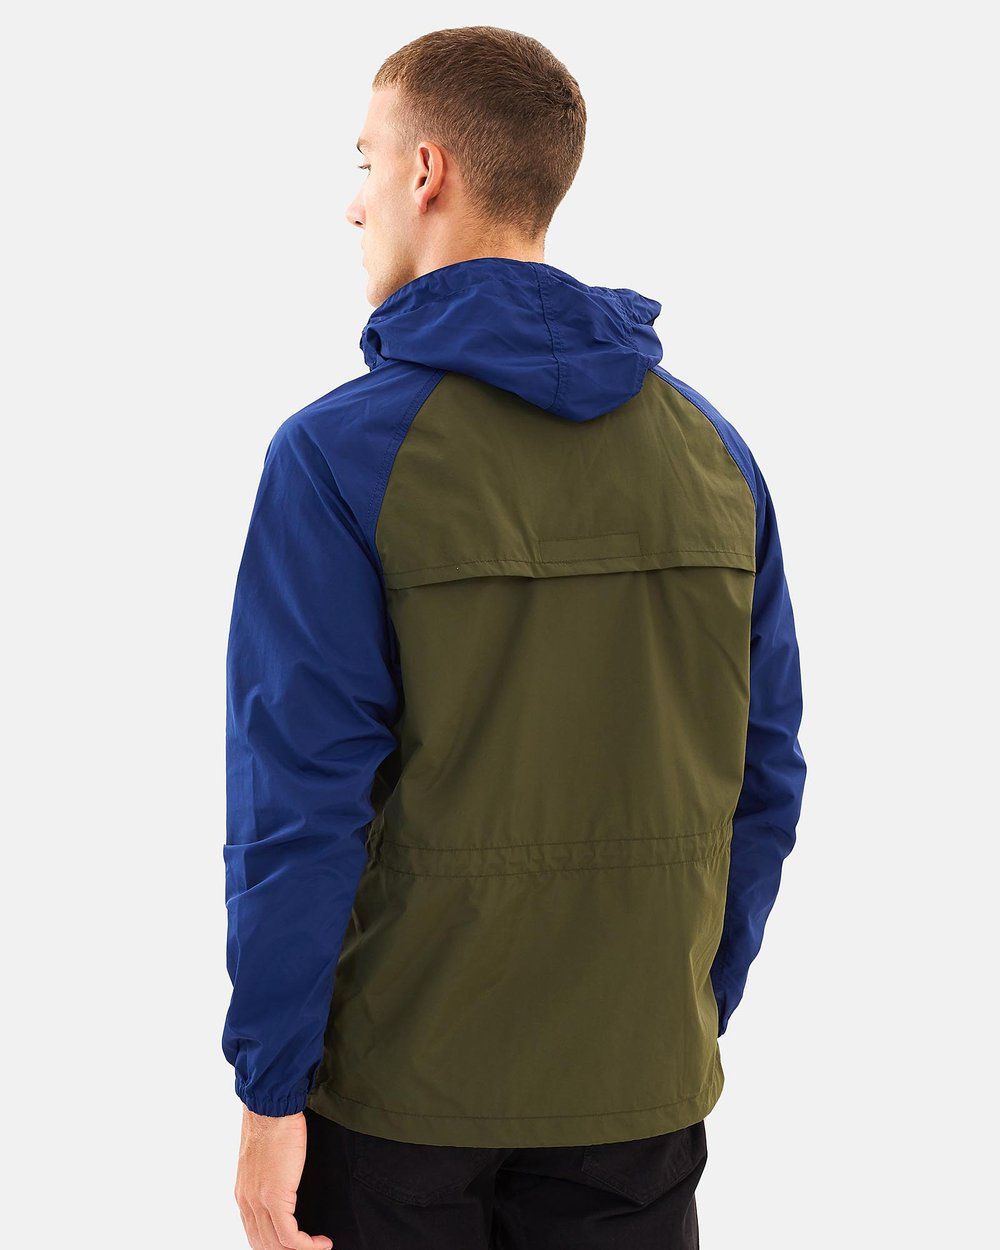 725fb4d8f Pac Jac Two Tone Jacket by Penfield Online